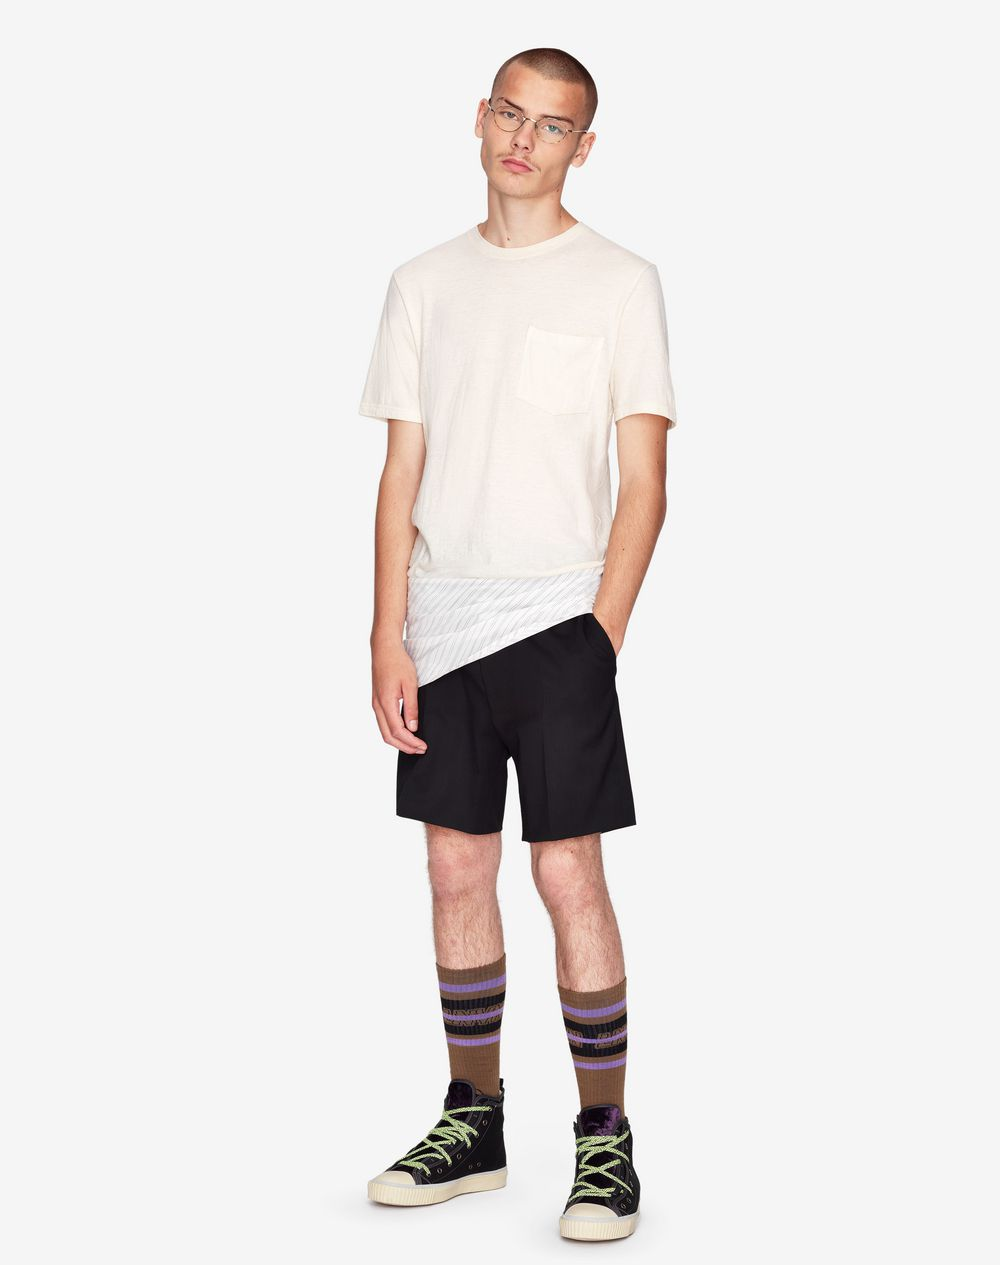 LONG STRIPED DUAL-MATERIAL T-SHIRT     - Lanvin